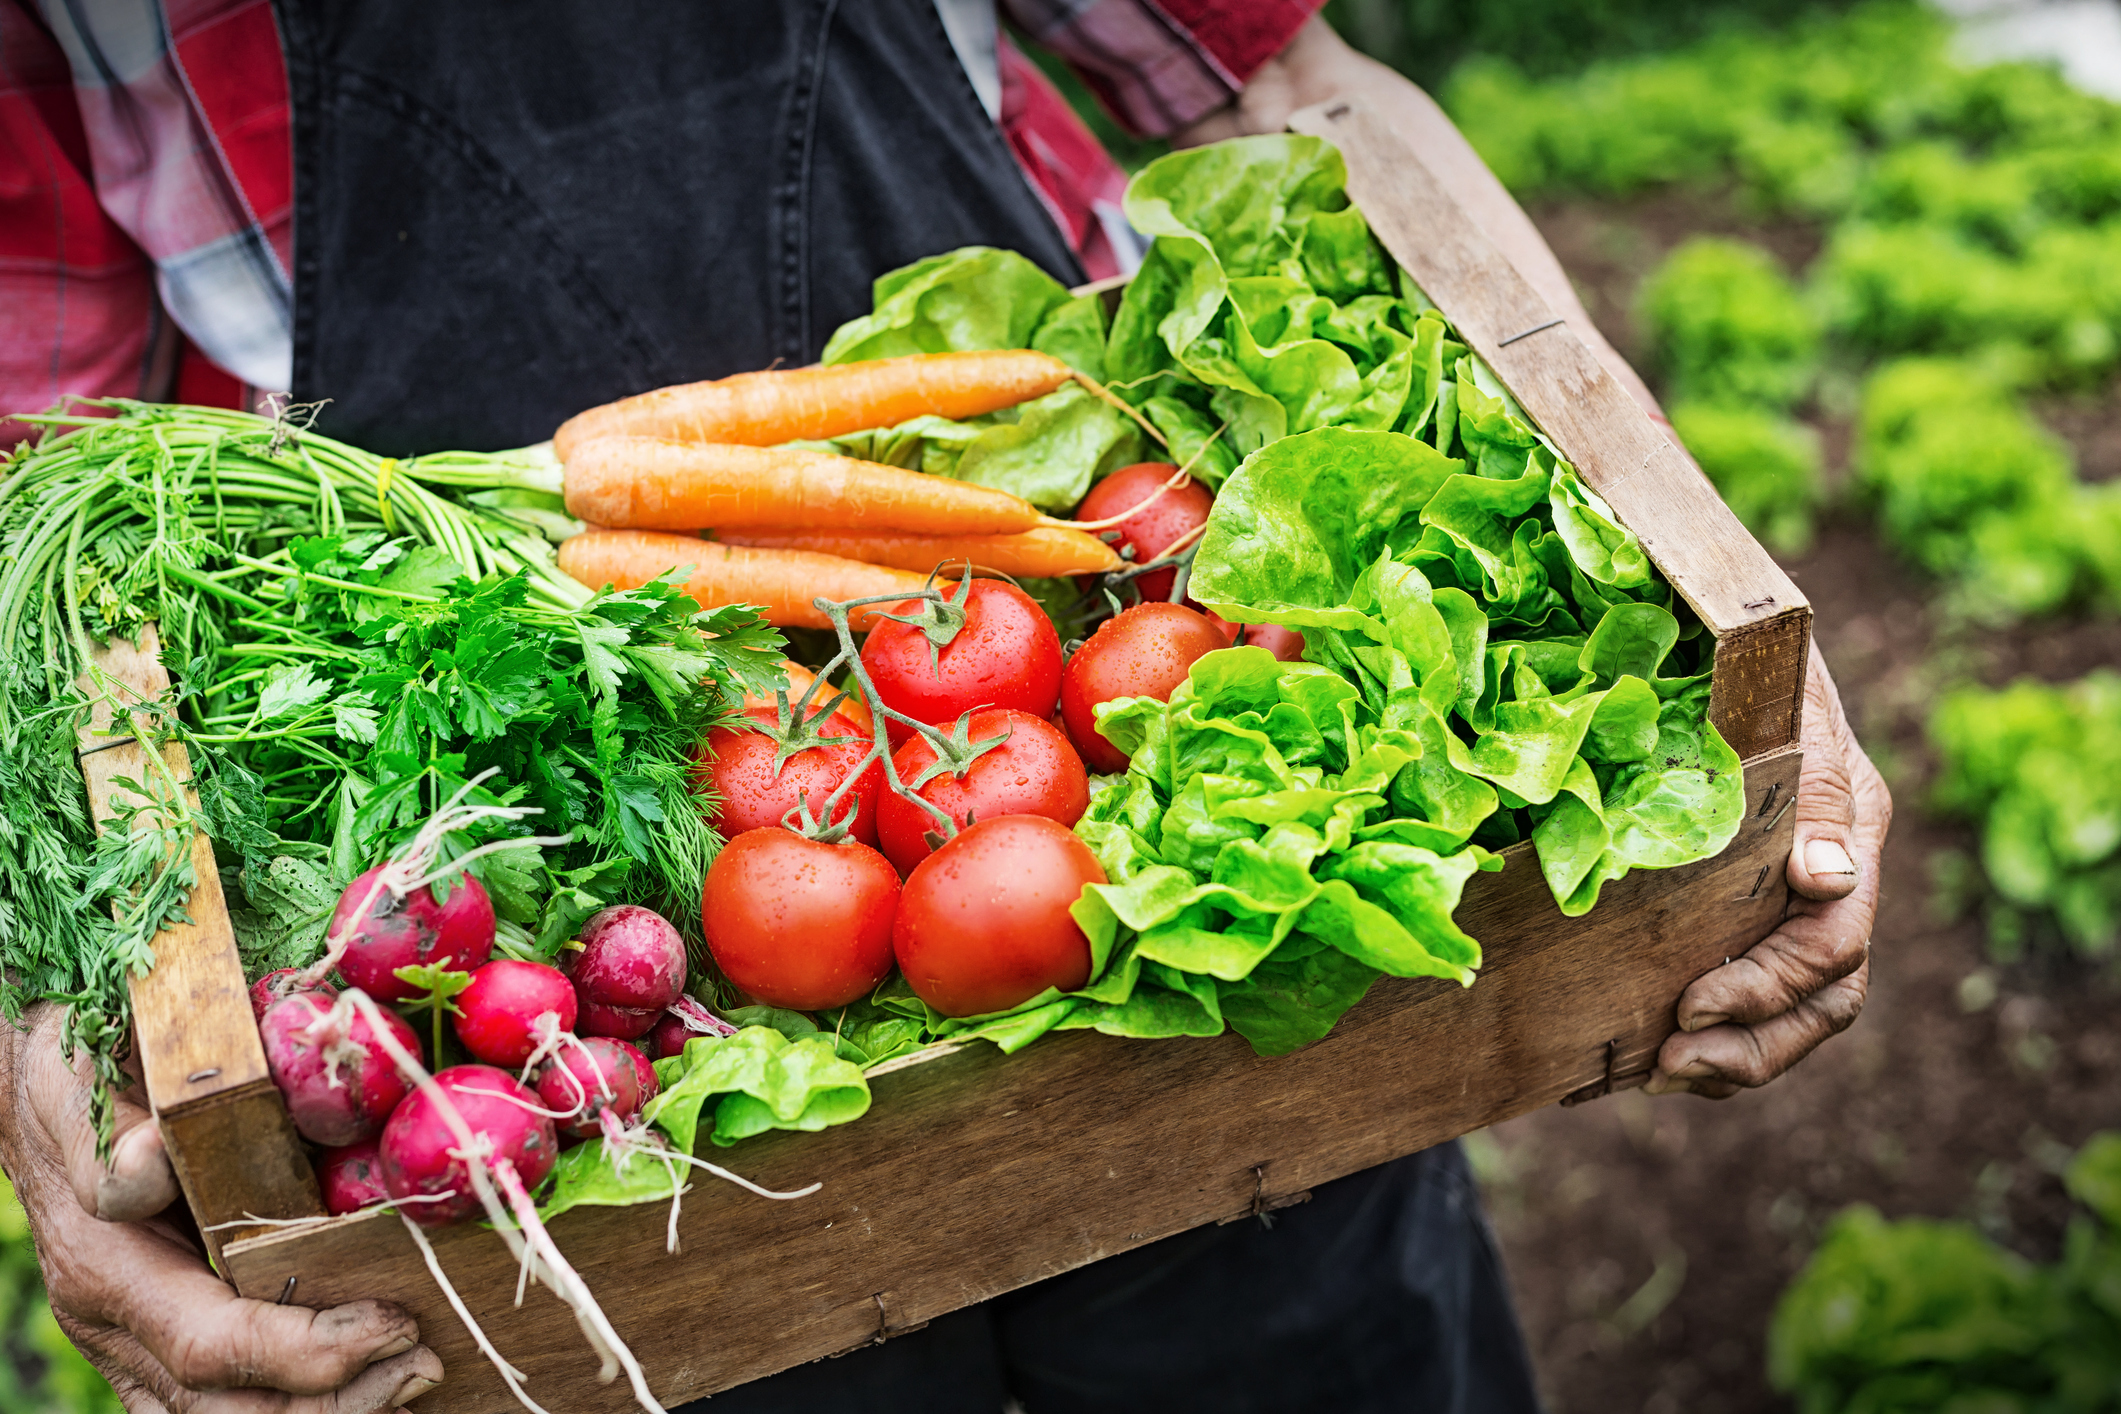 AccorHotels boosts supply chain sustainability with 600 urban food gardens   Waste Management